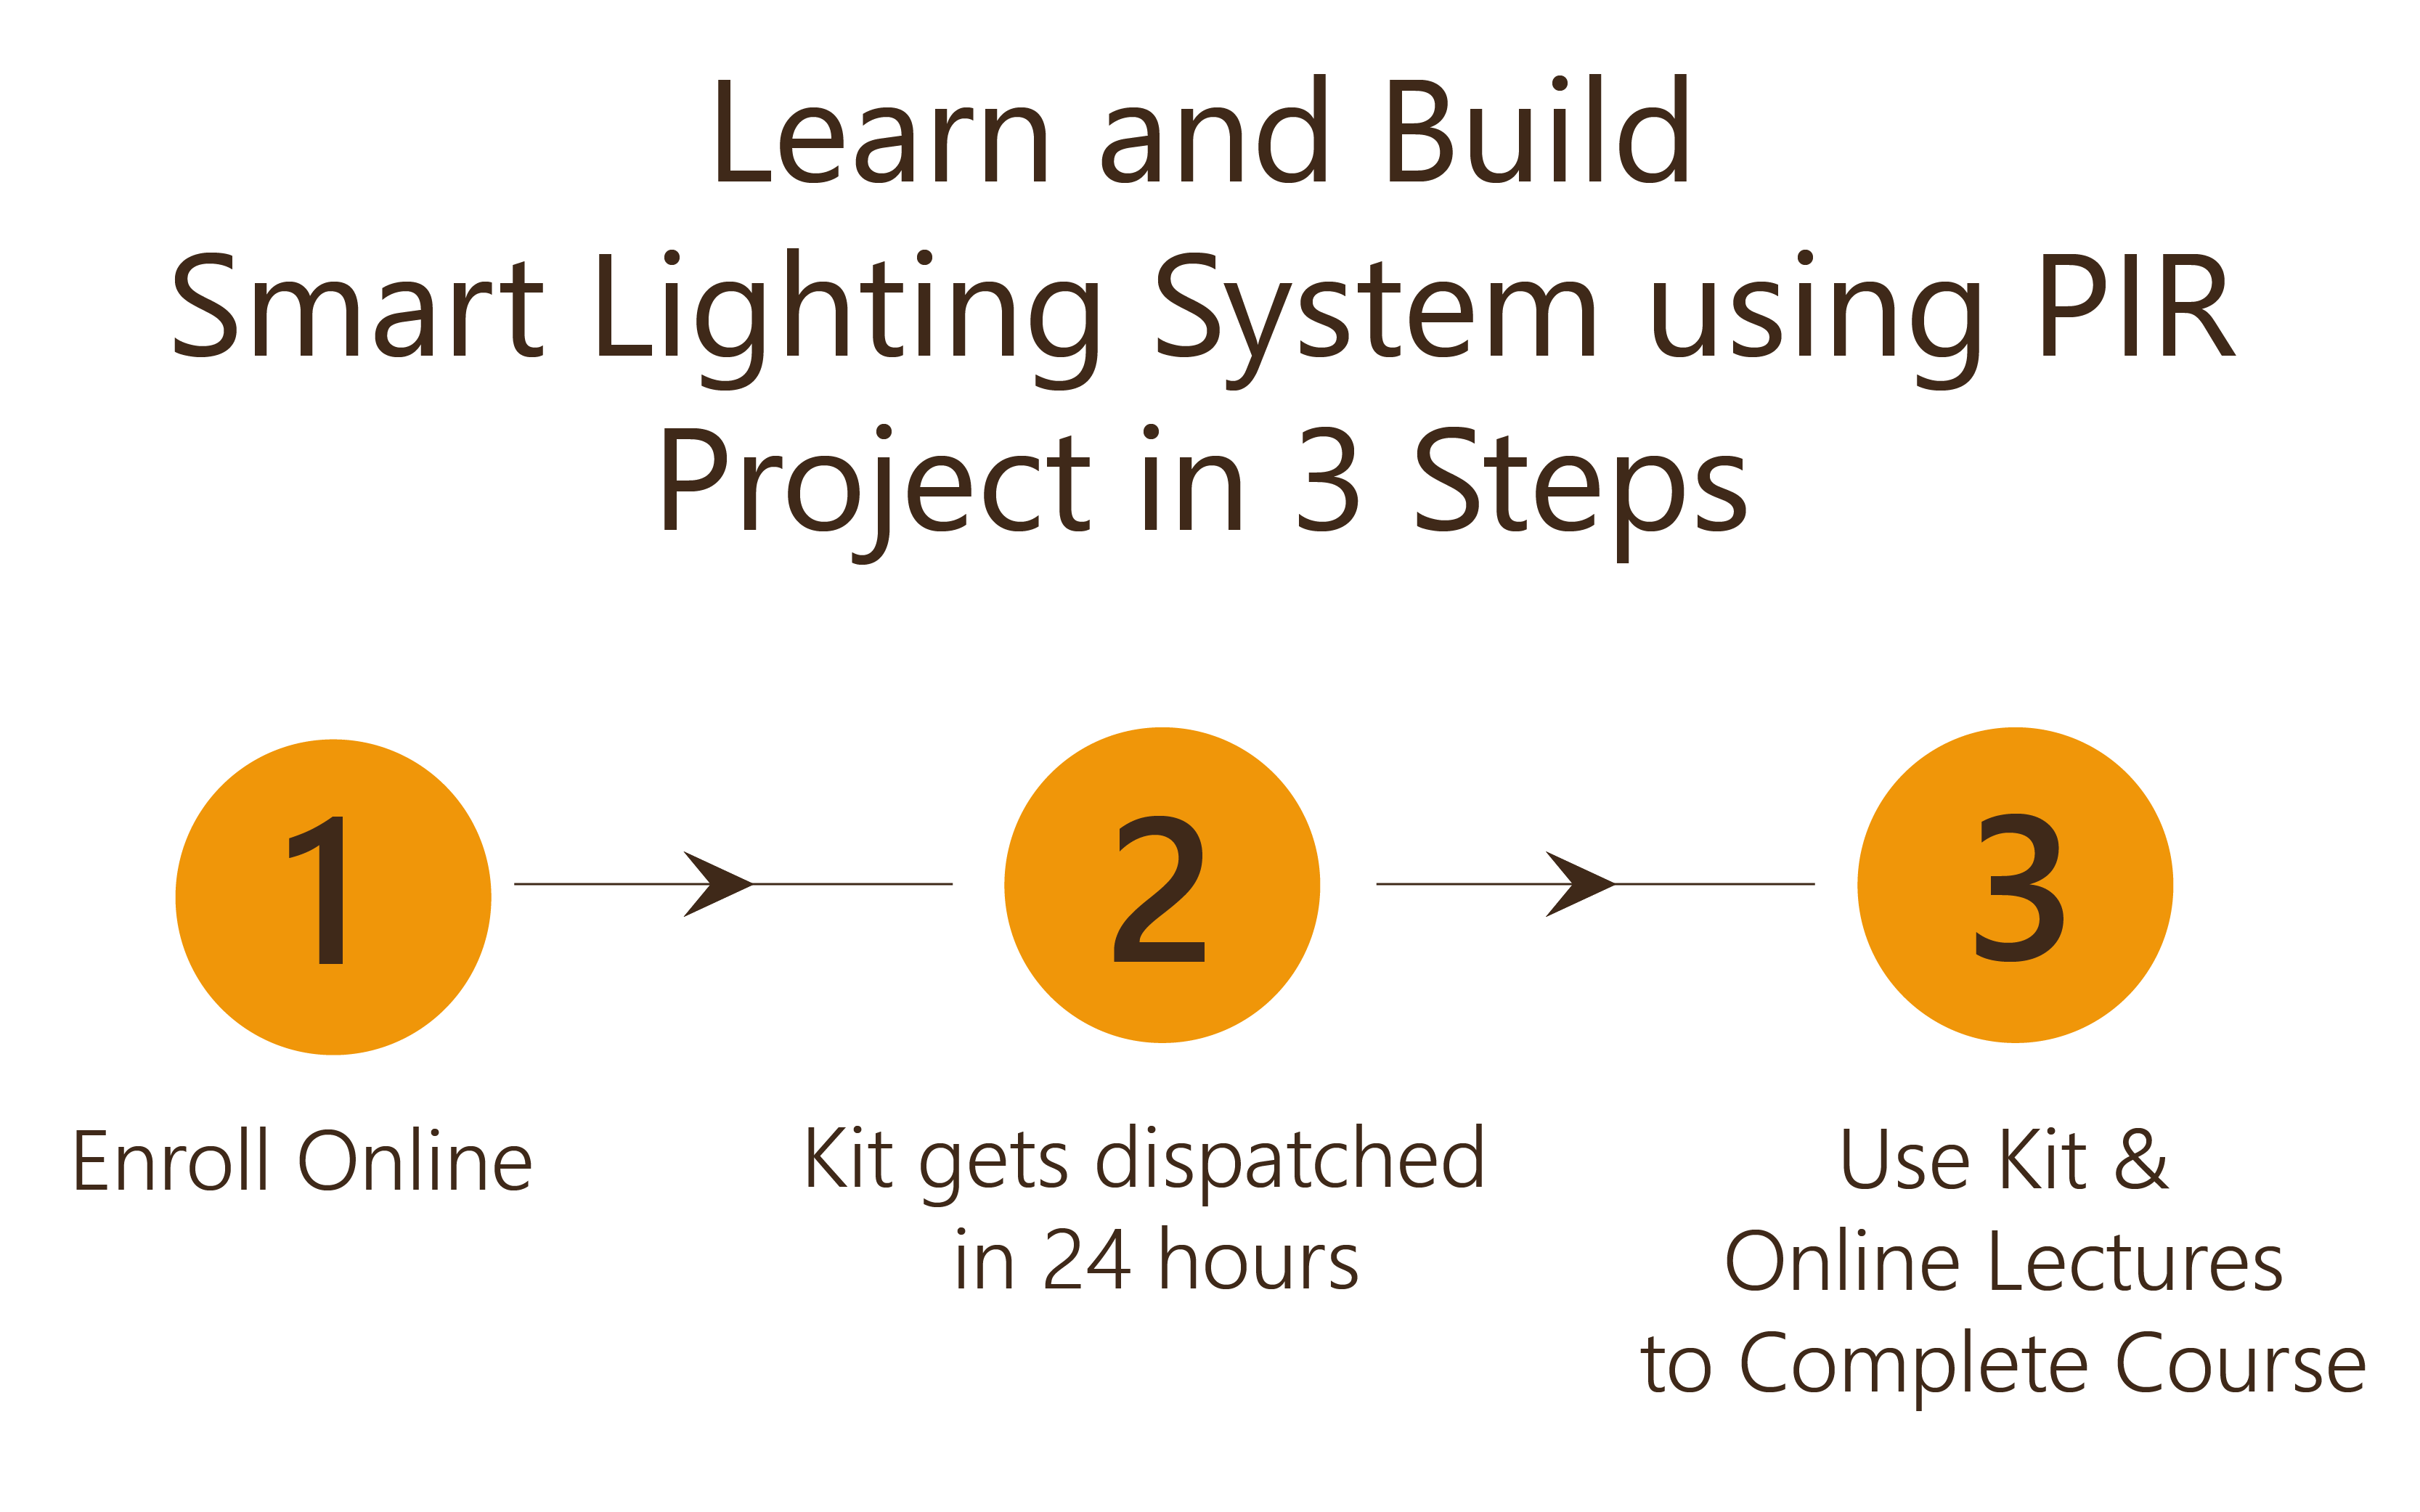 Design and Build Smart Lighting System using PIR in 3 Steps